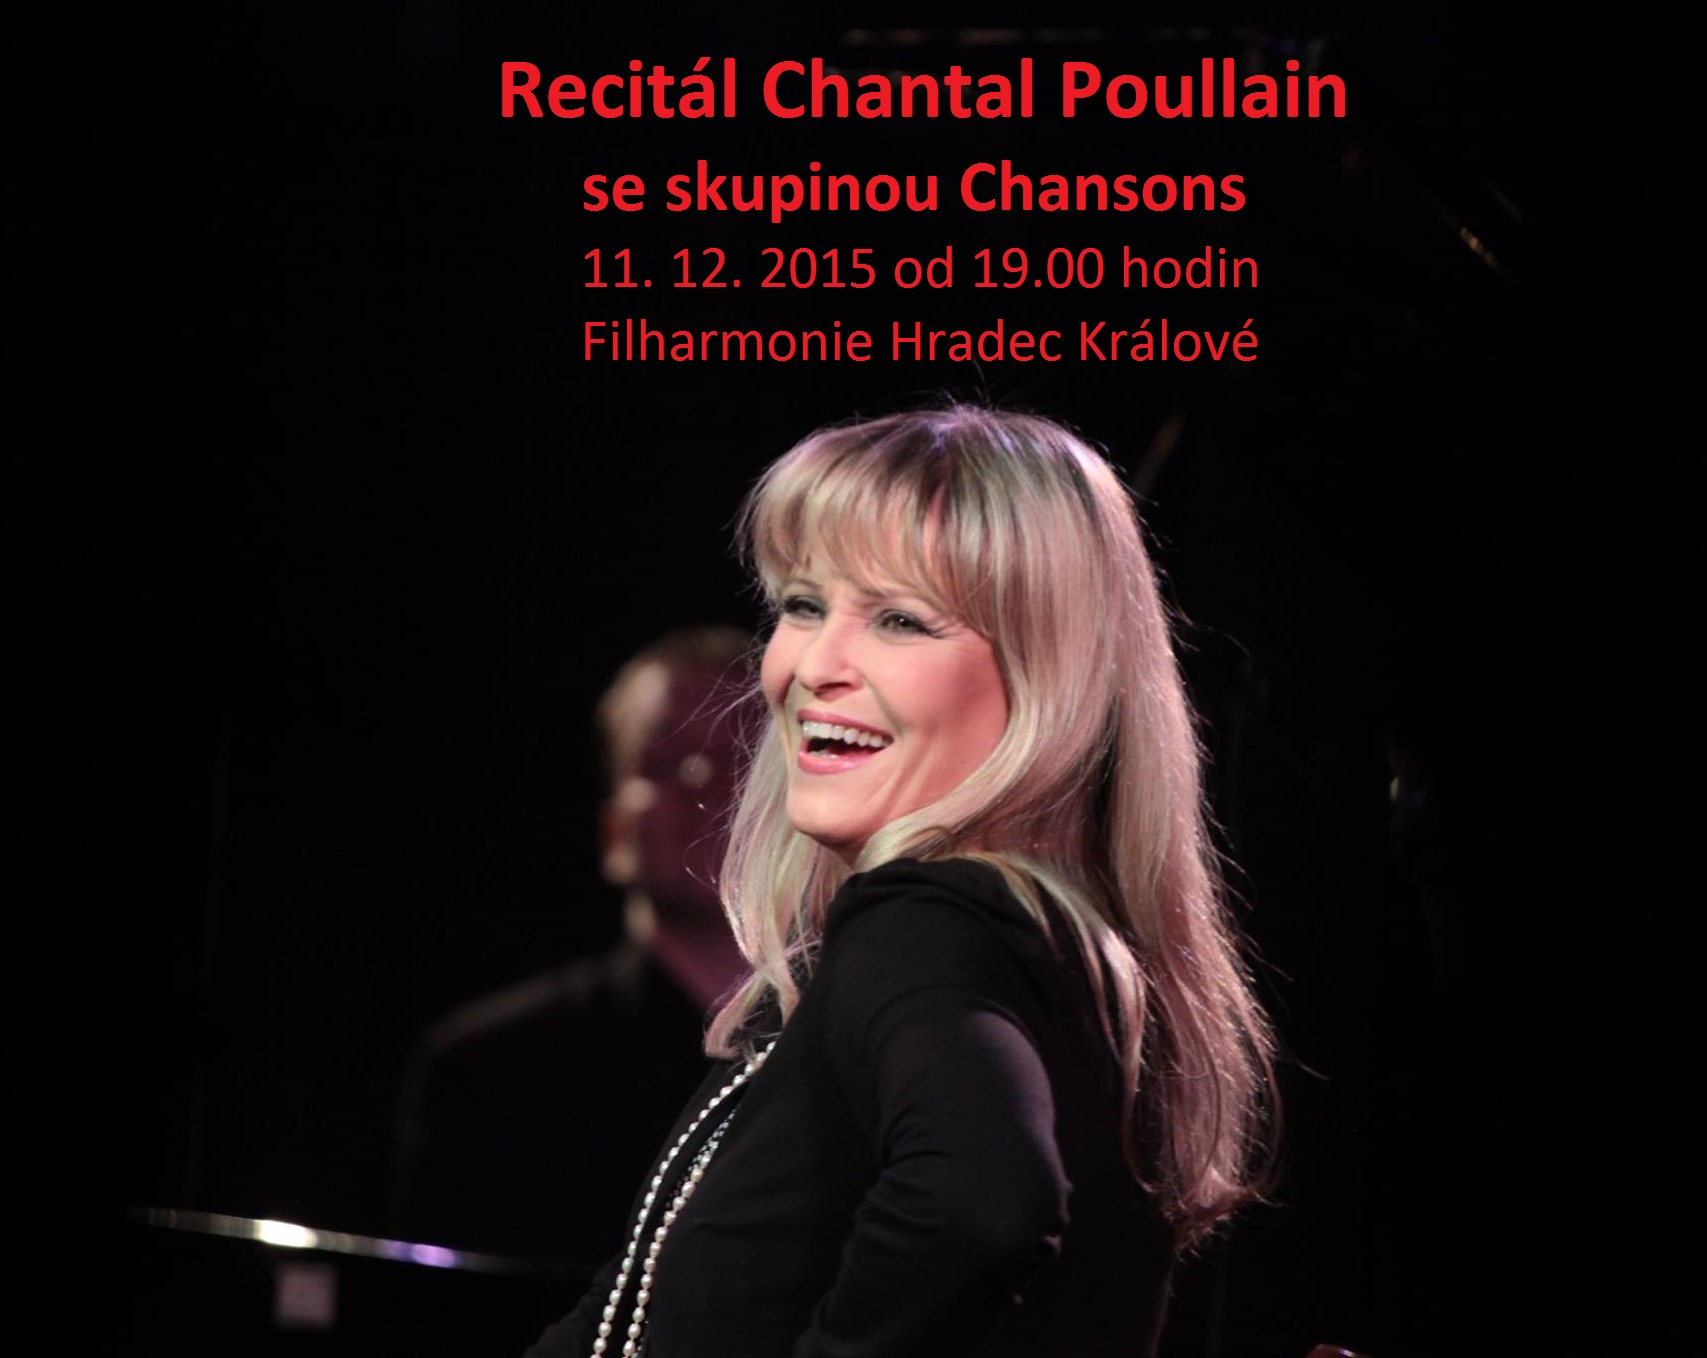 Recitál Chantal Poullain se skupinou Chansons